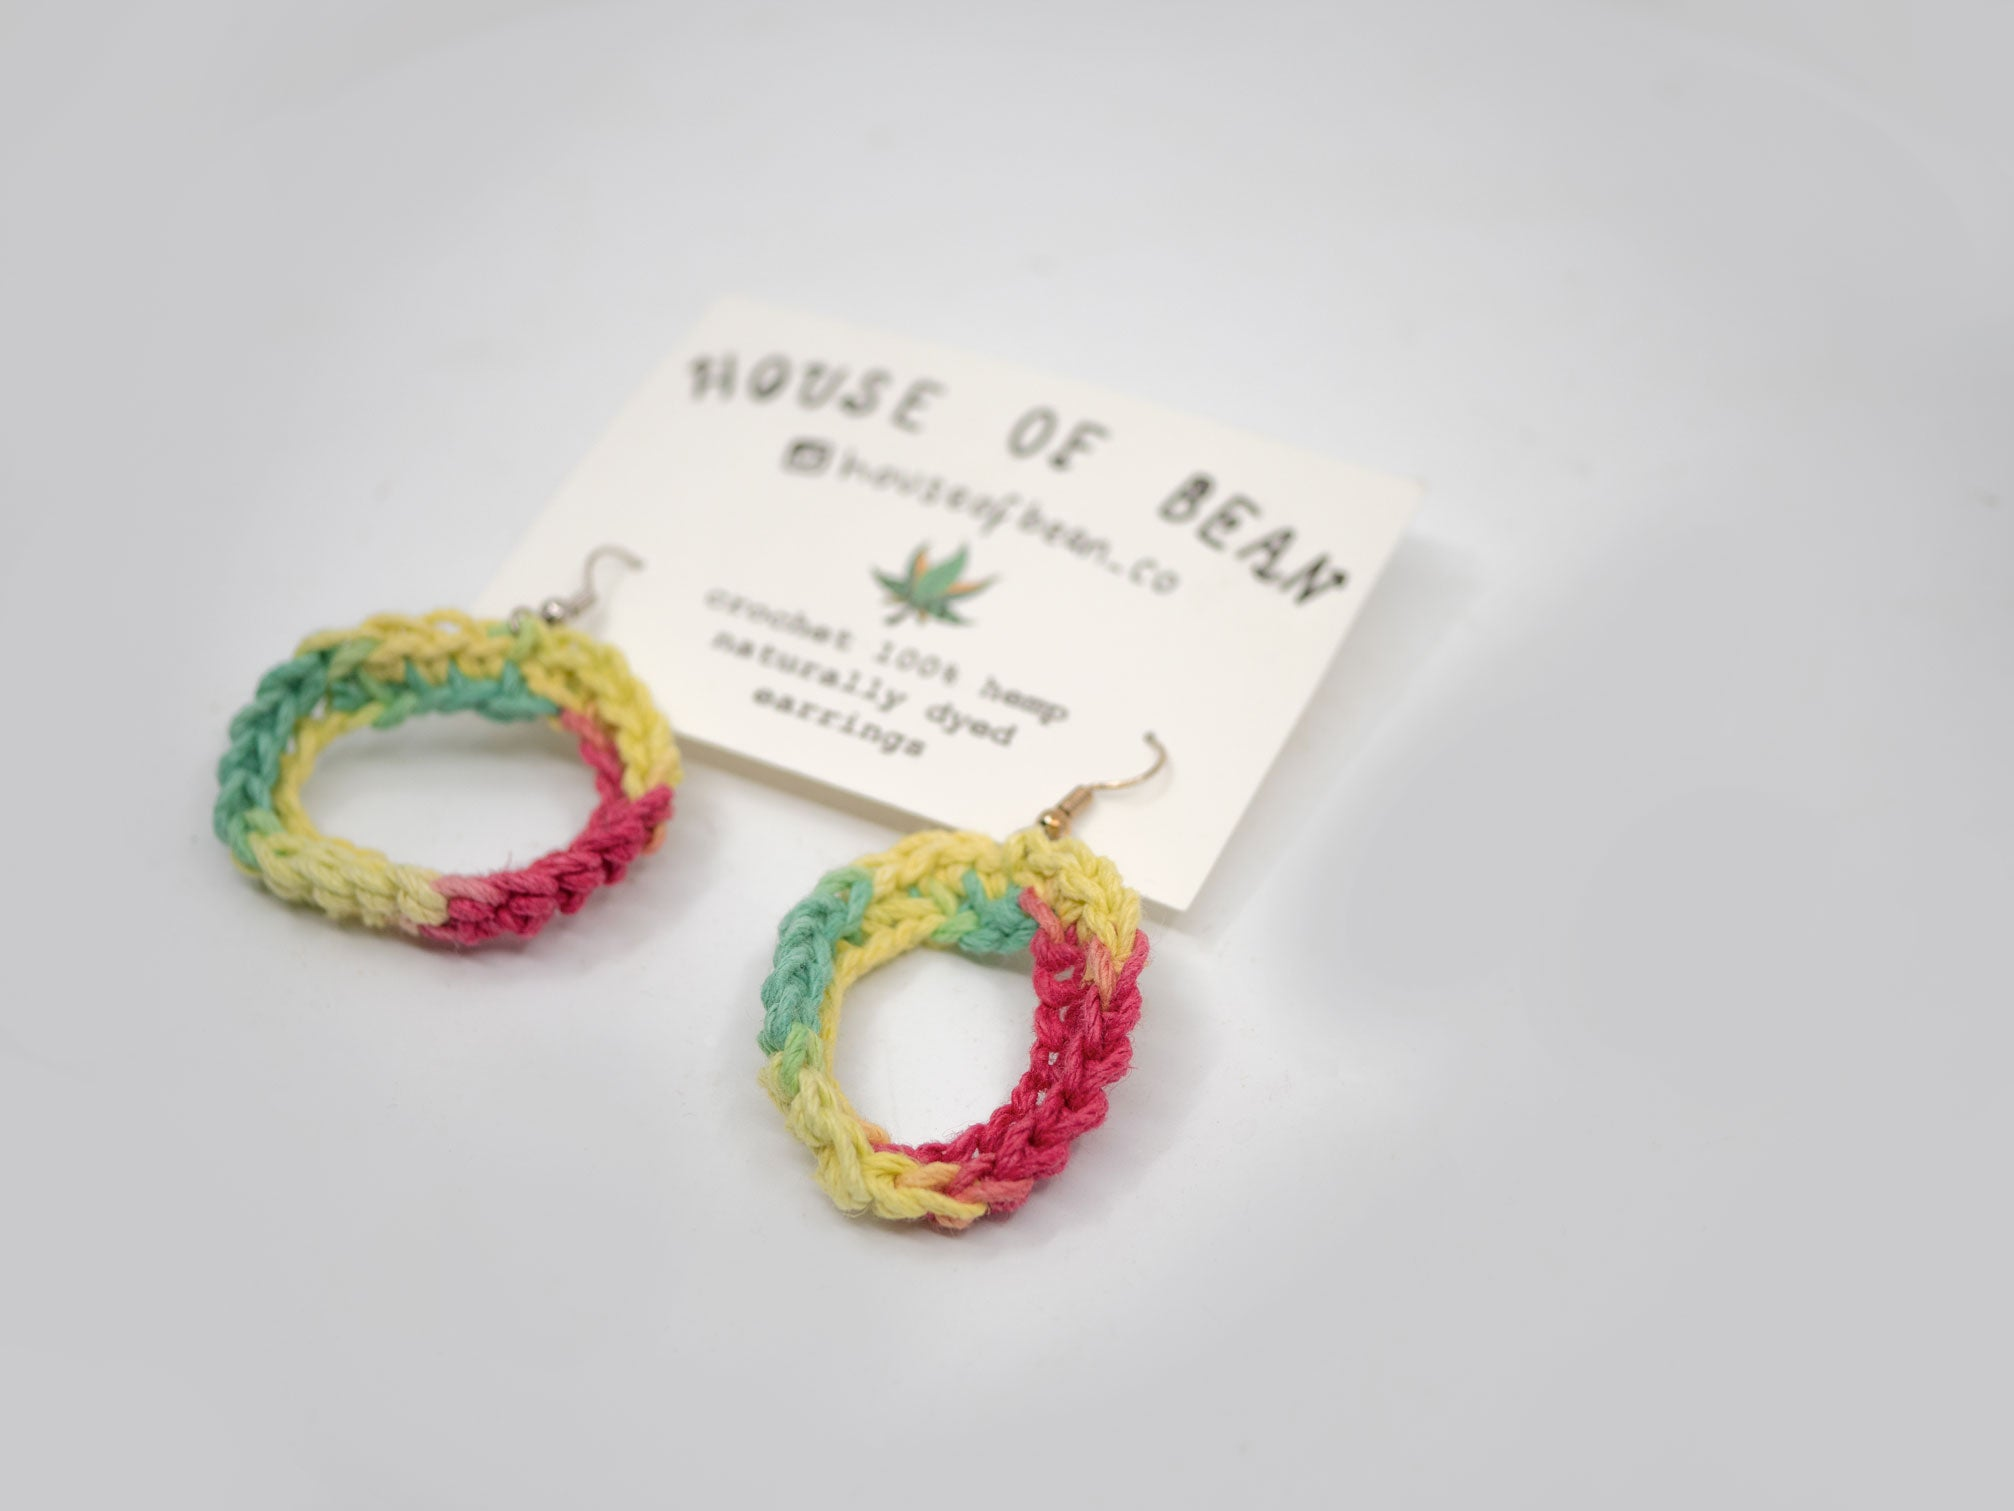 Handmade Earrings | Pop-Up Product